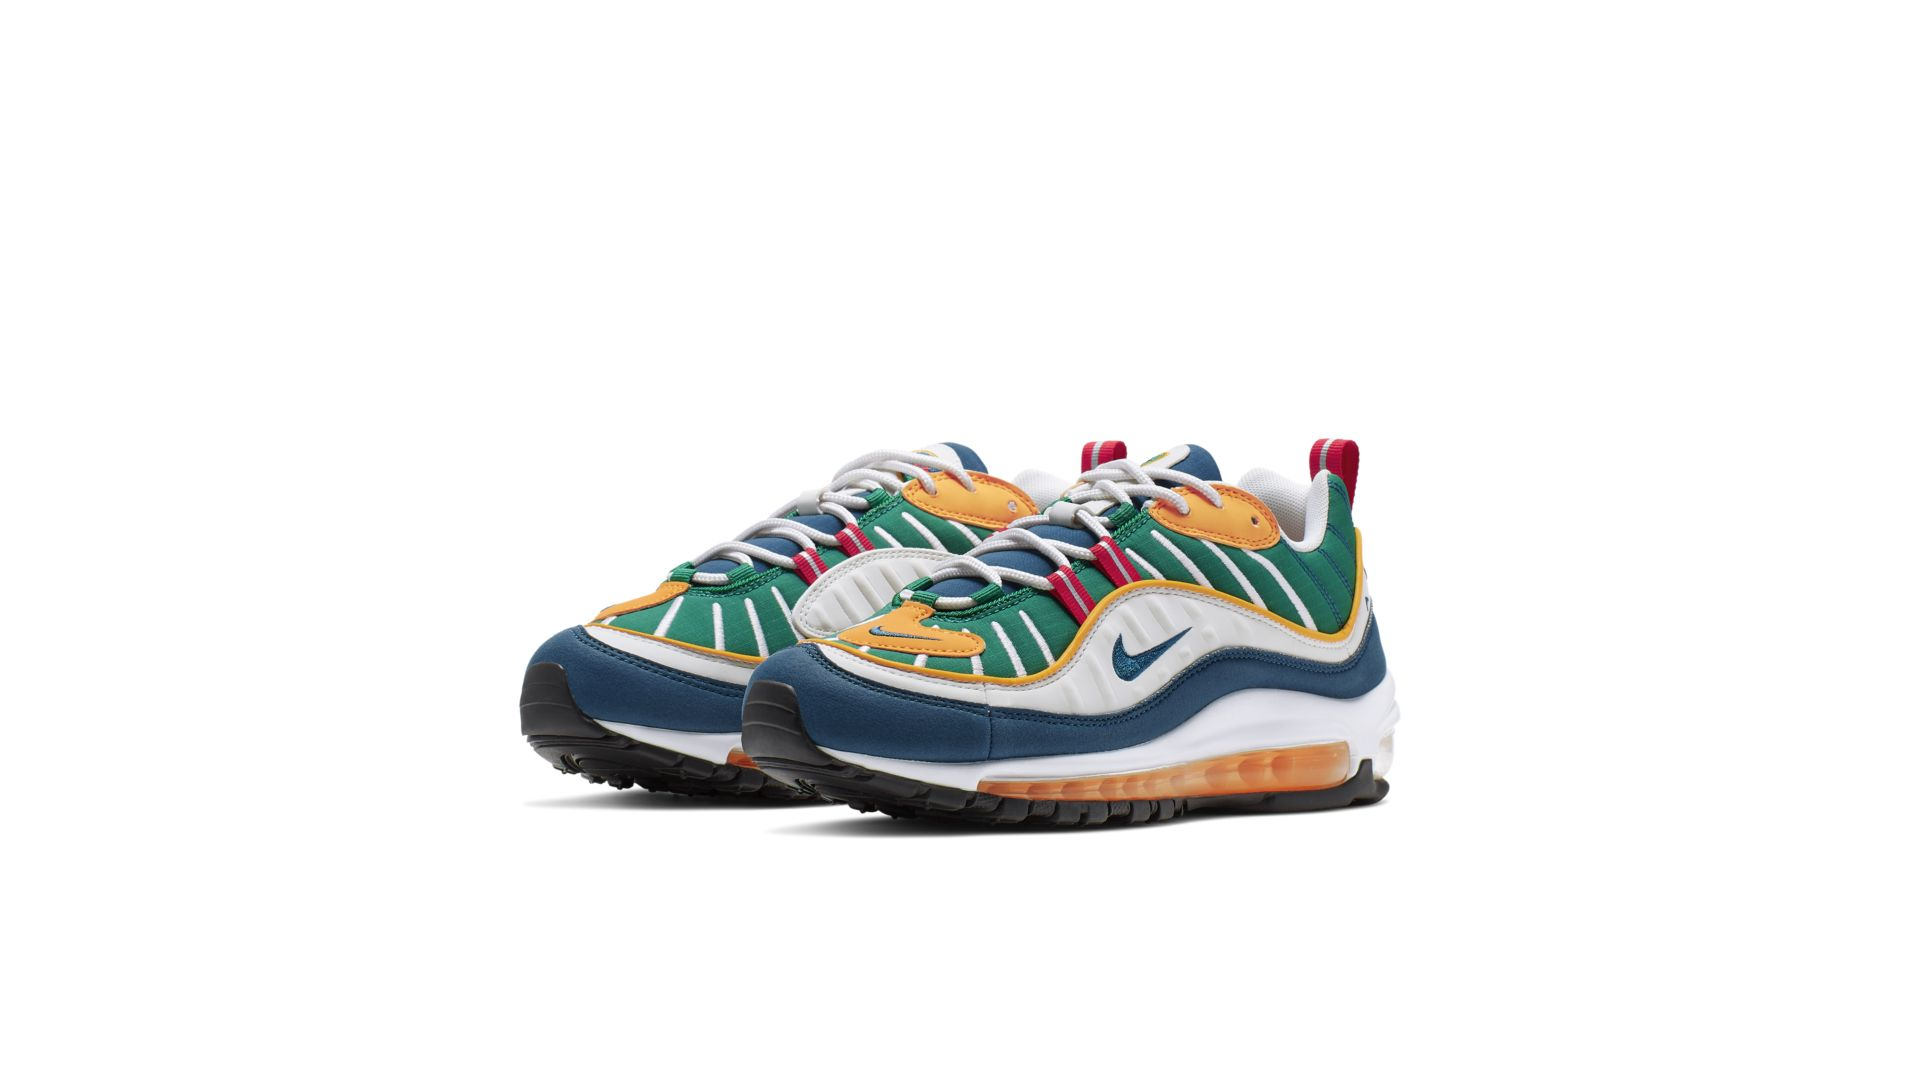 Nike WMNS Air Max 98 'Blue Force' (AH6799-601)